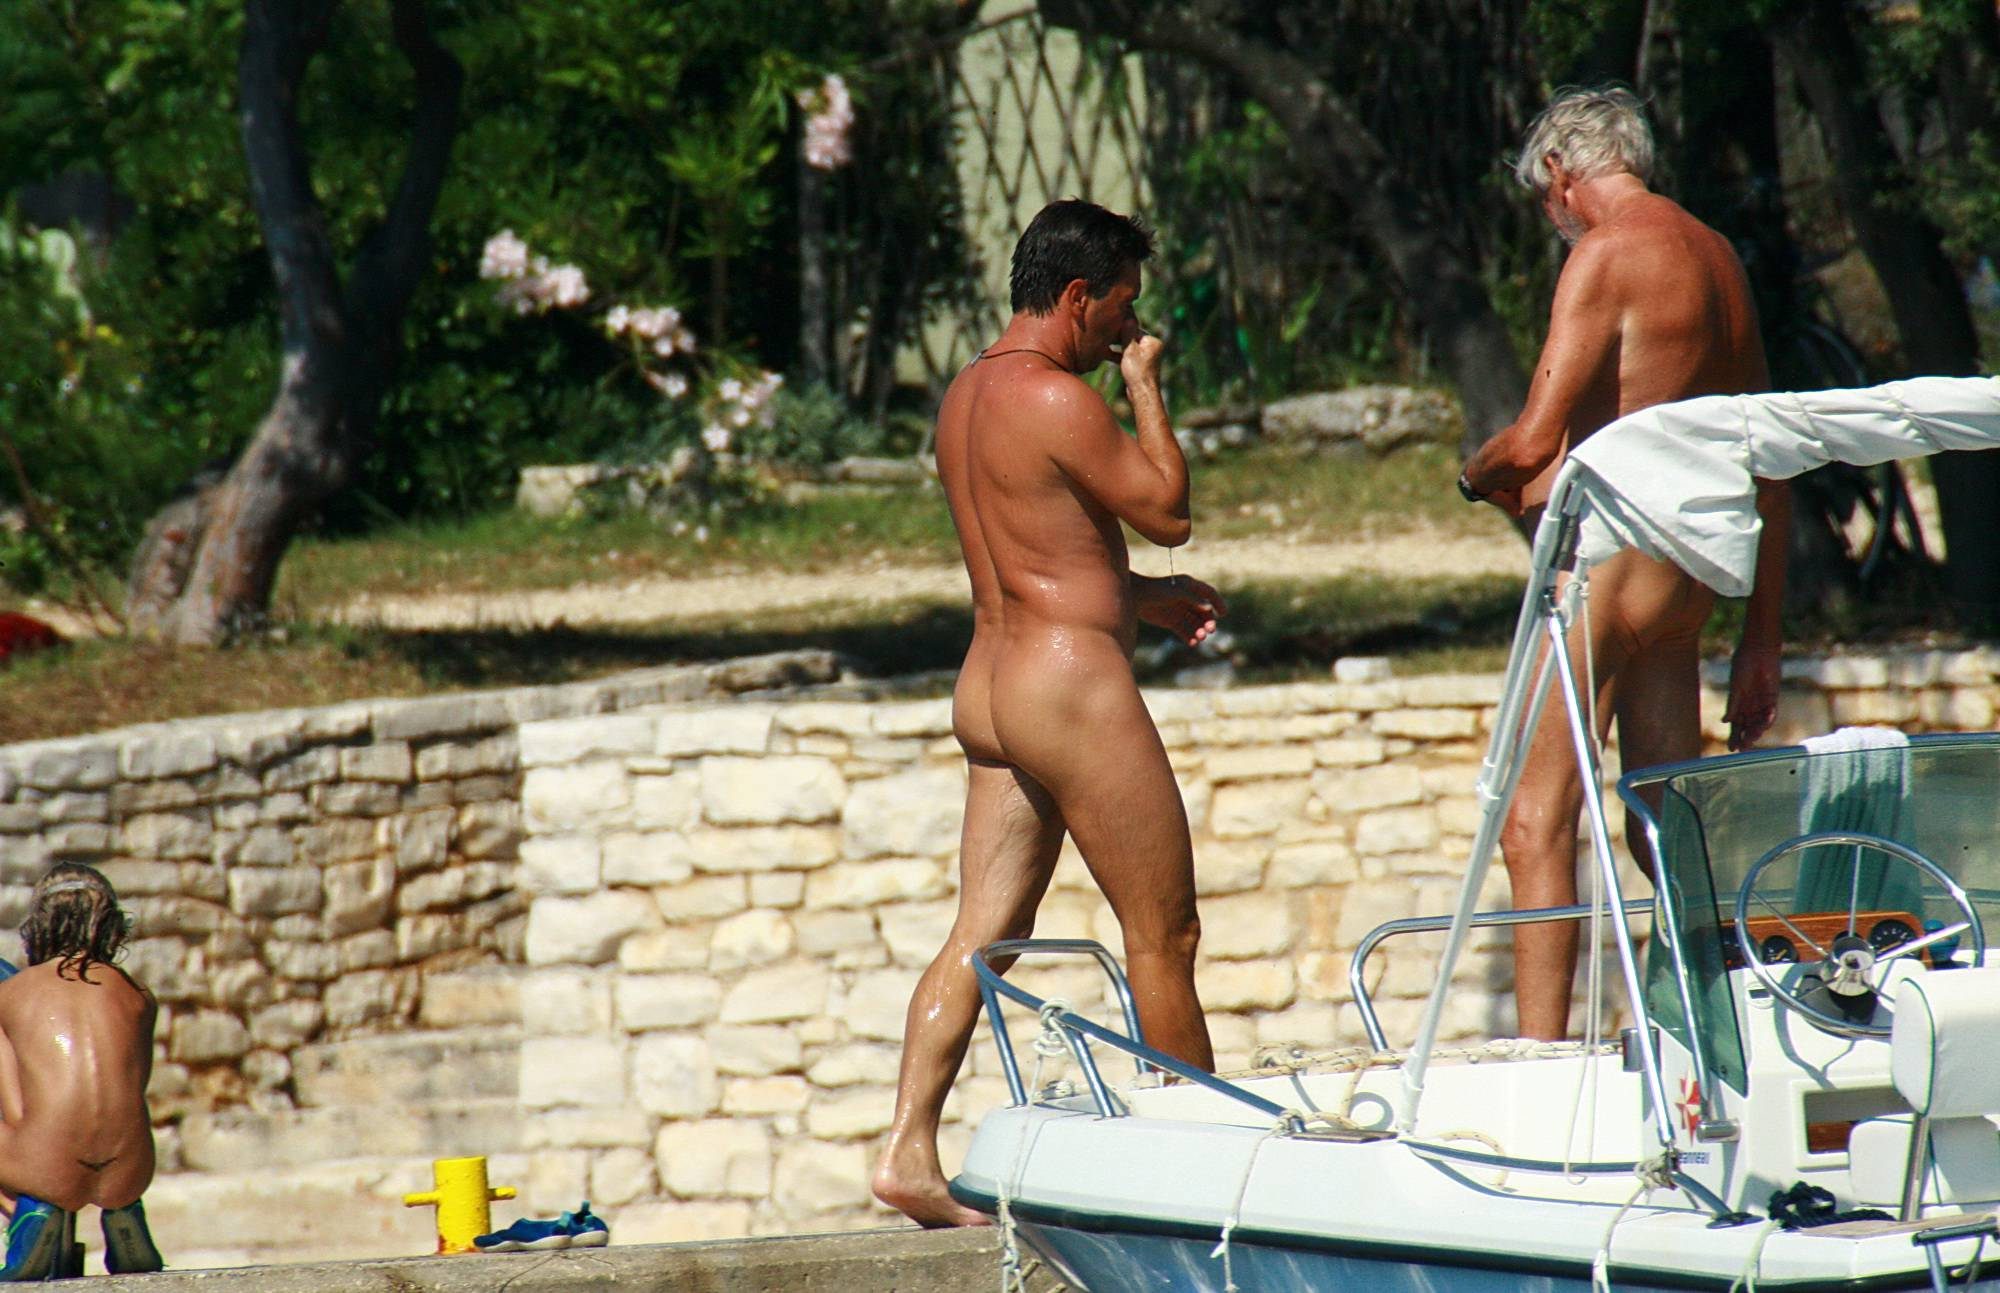 Pure Nudism Images Jumping Off Of The Pier - 2